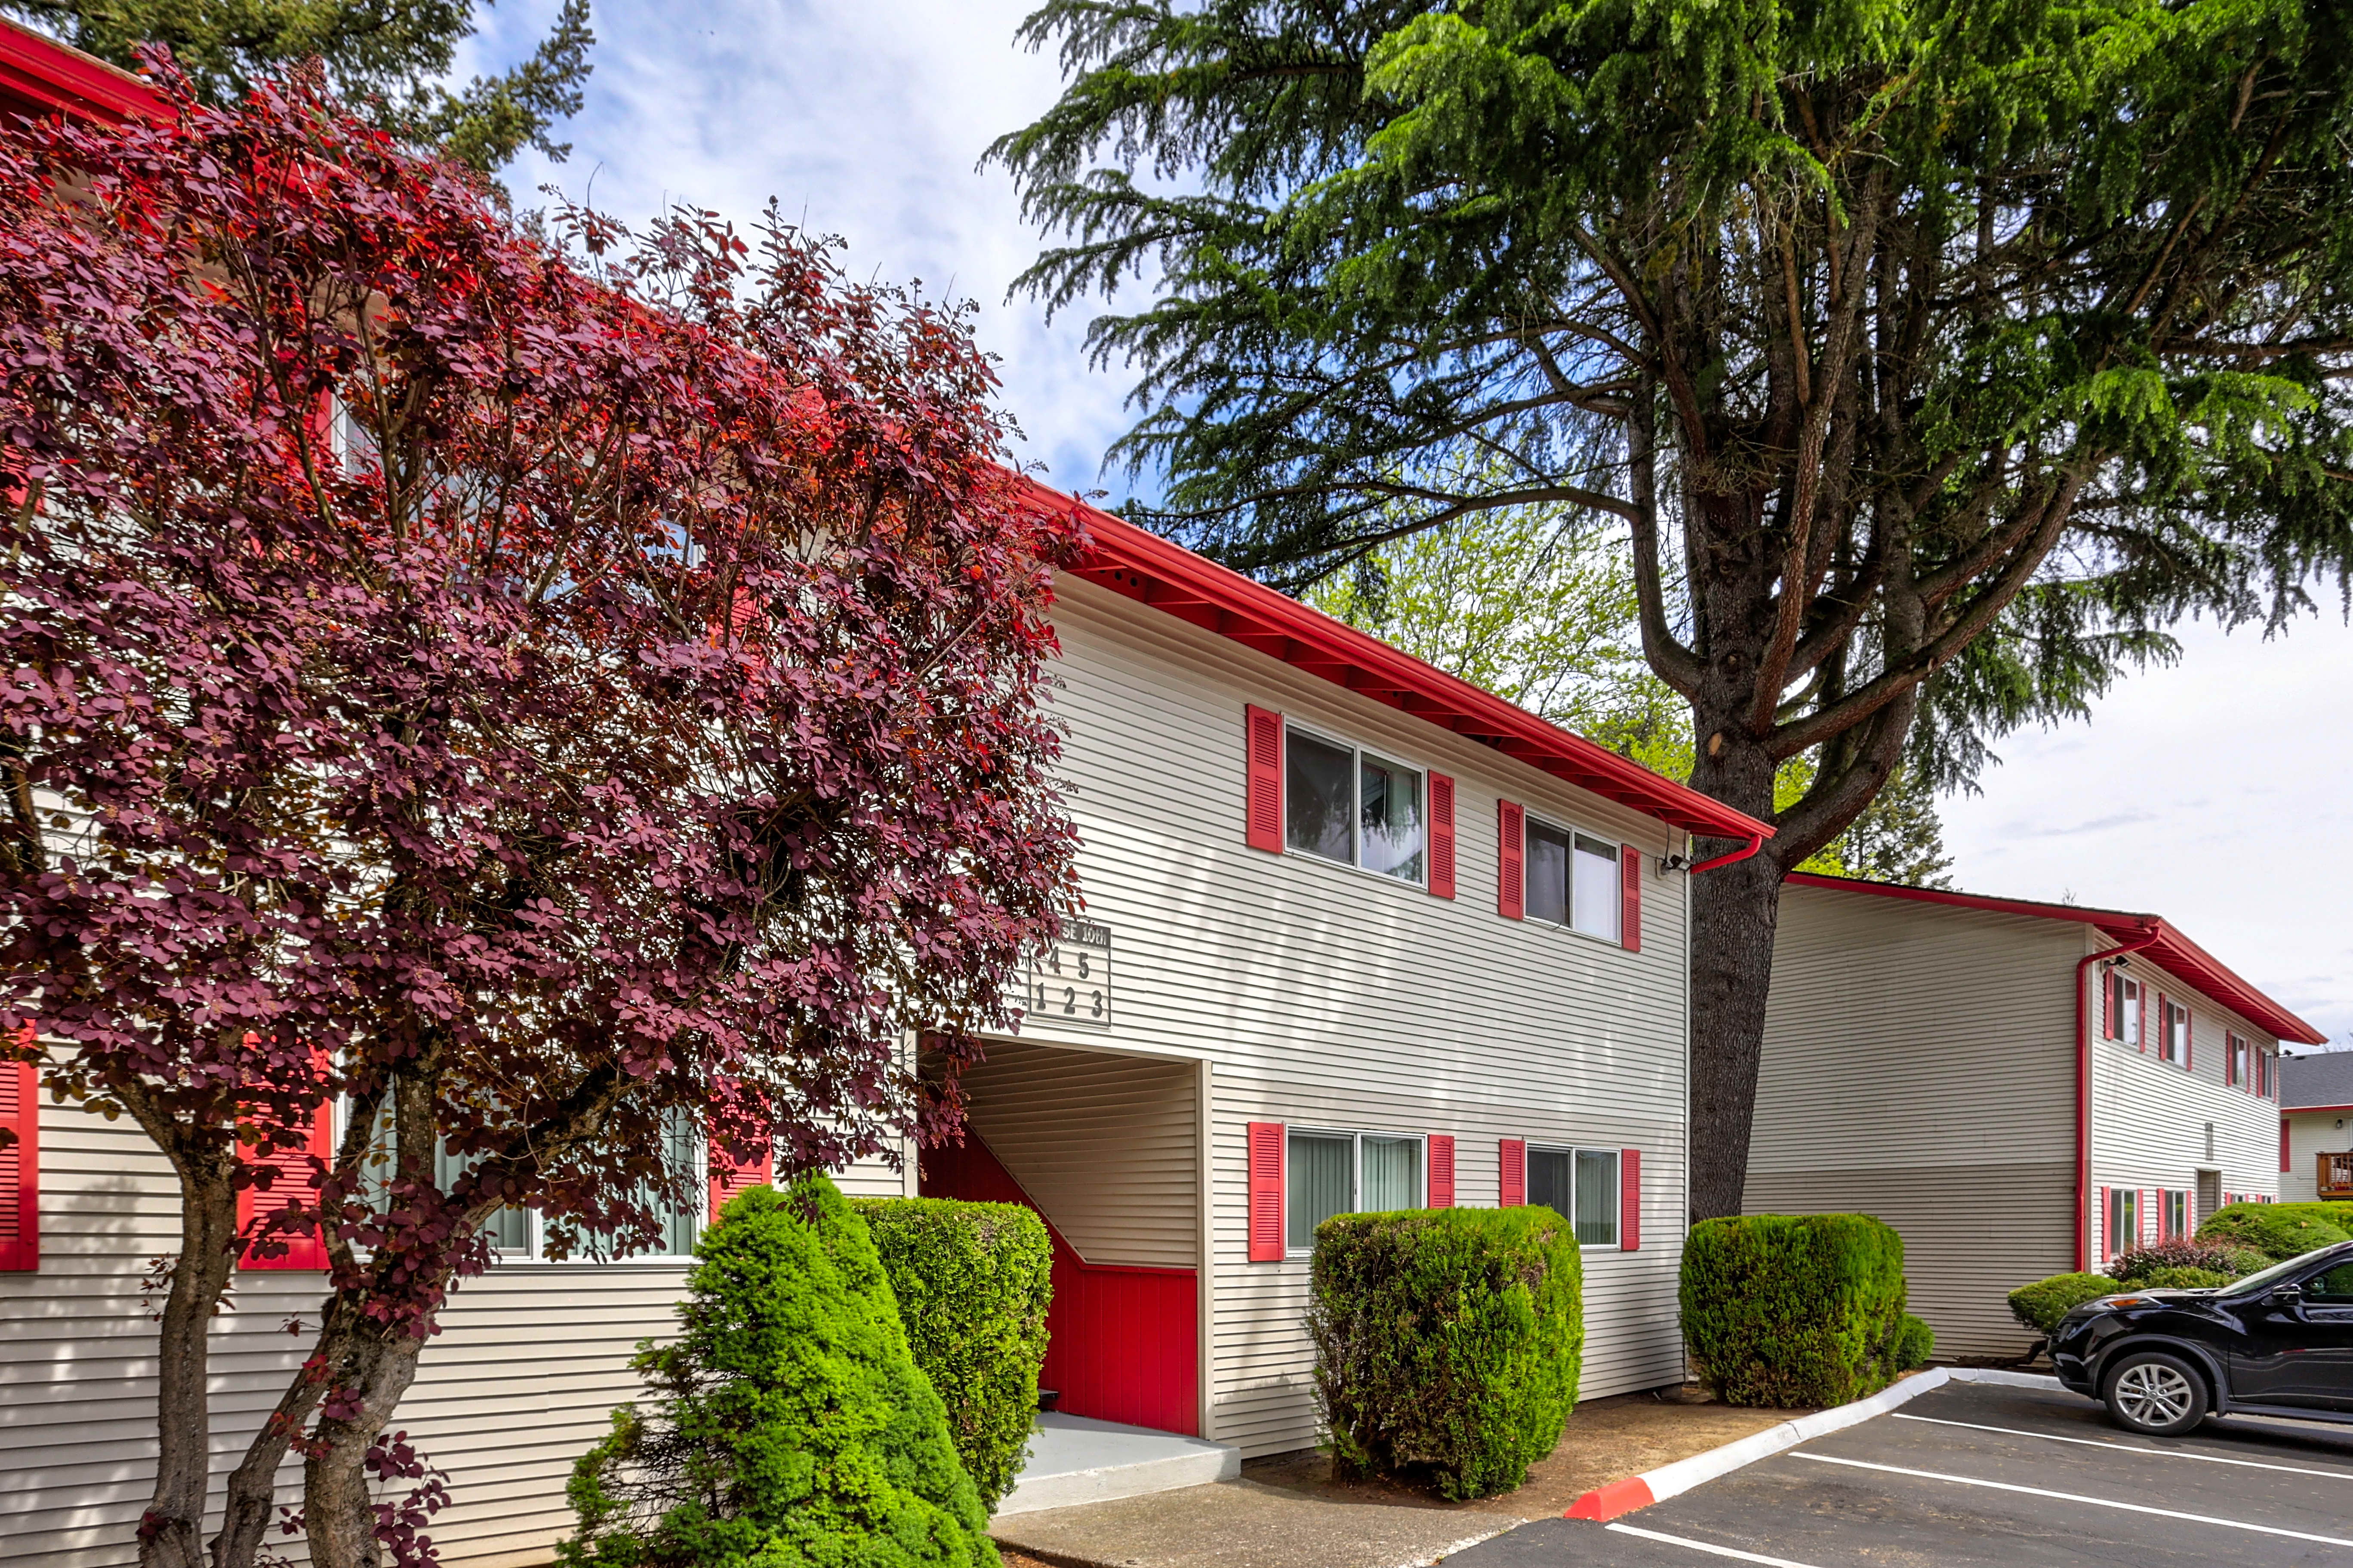 Apartments Near Pacific Parkview Apartments for Pacific University Students in Forest Grove, OR